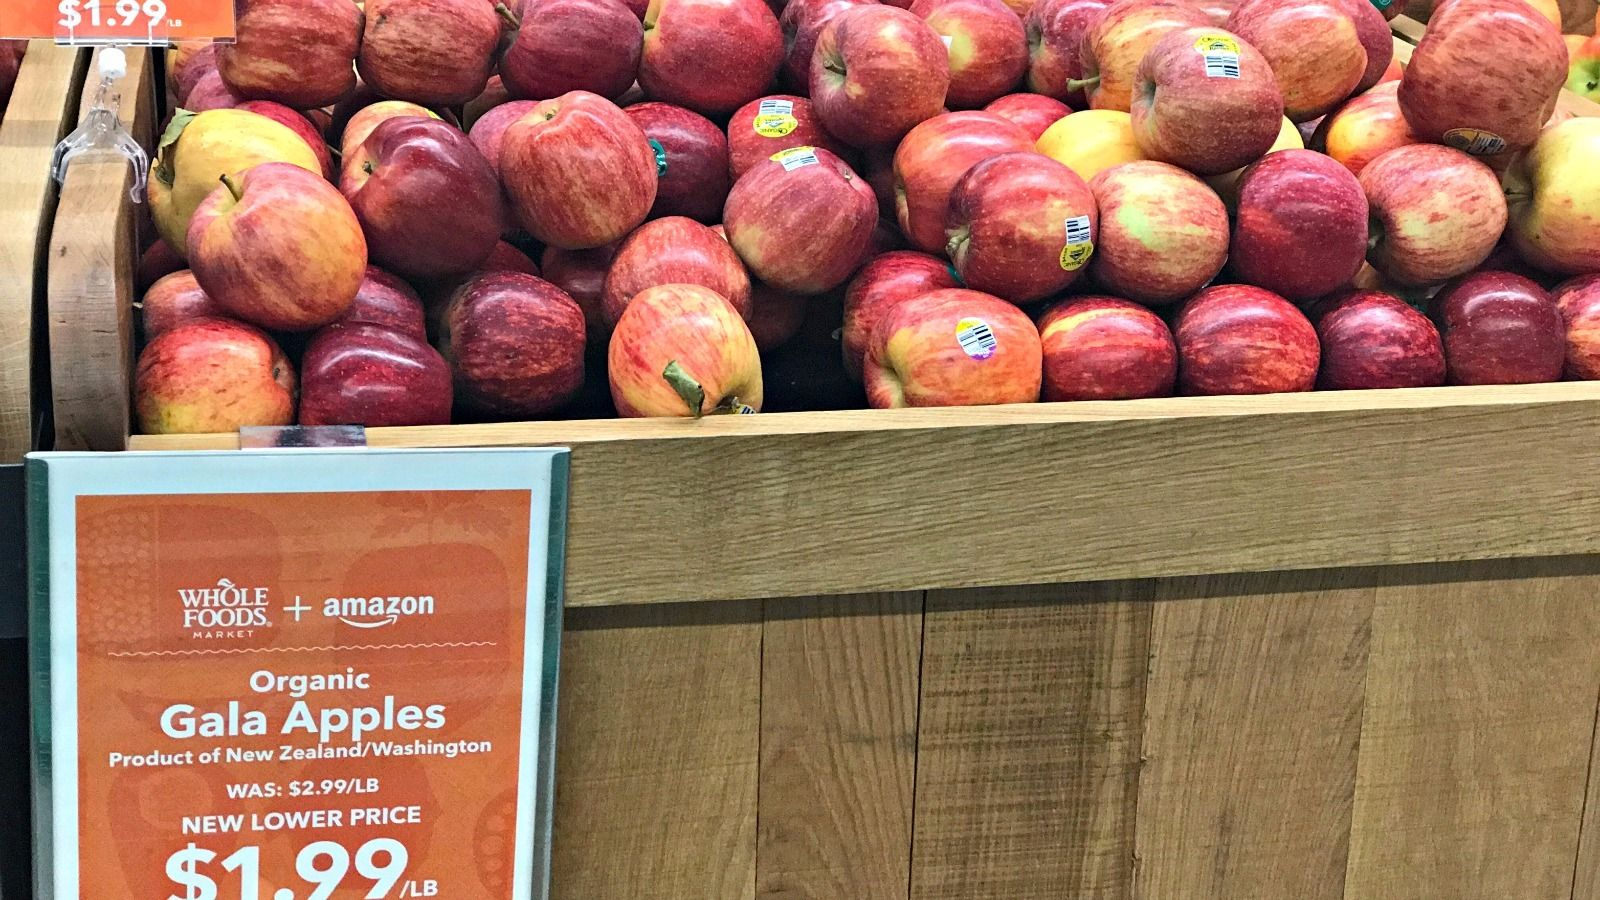 A Rosh Hashanah staple, apples are among the items on sale at Whole Foods.